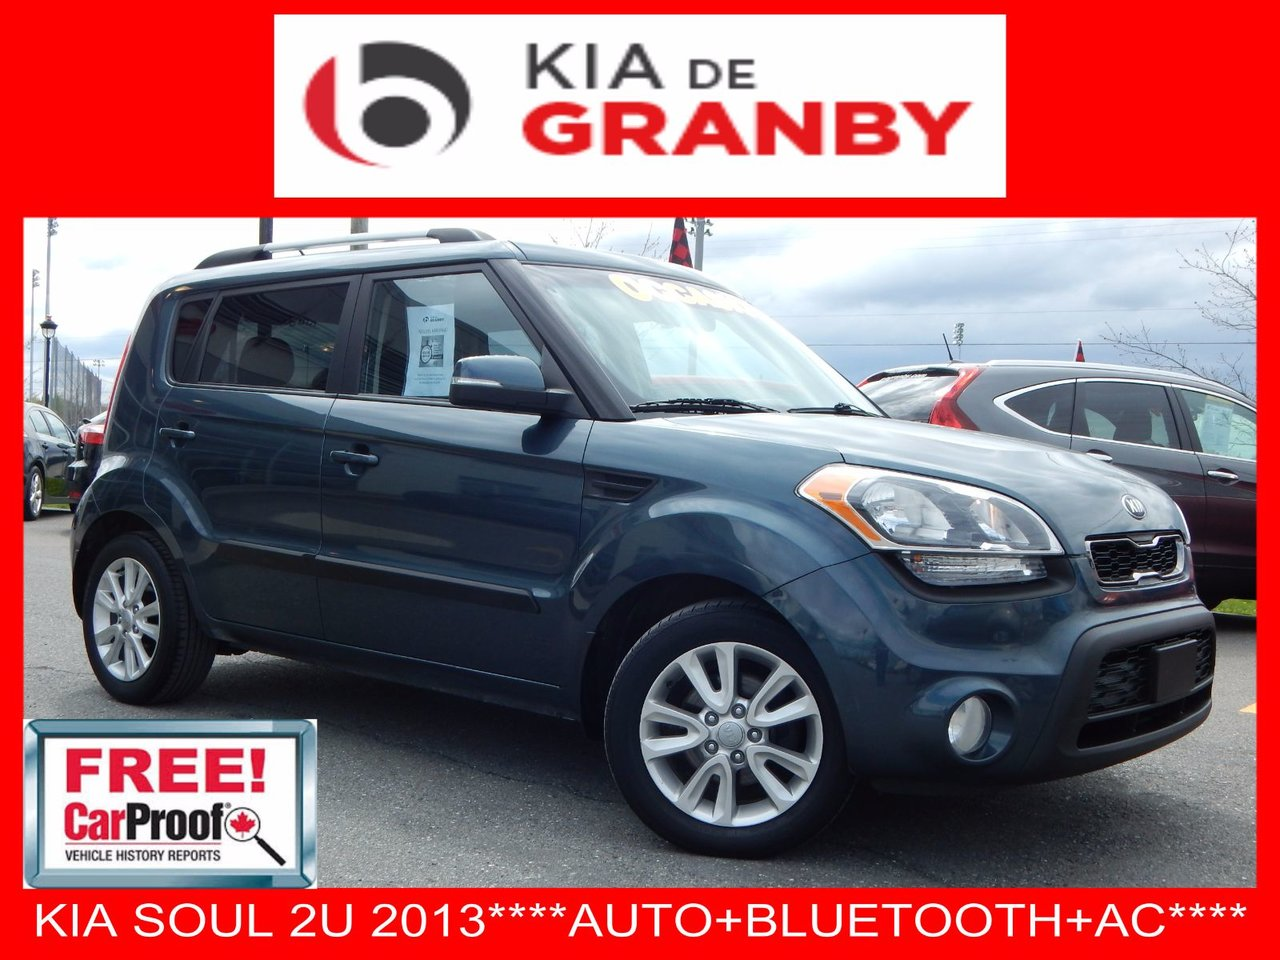 kia soul 2013 d 39 occasion vendre chez kia de granby. Black Bedroom Furniture Sets. Home Design Ideas